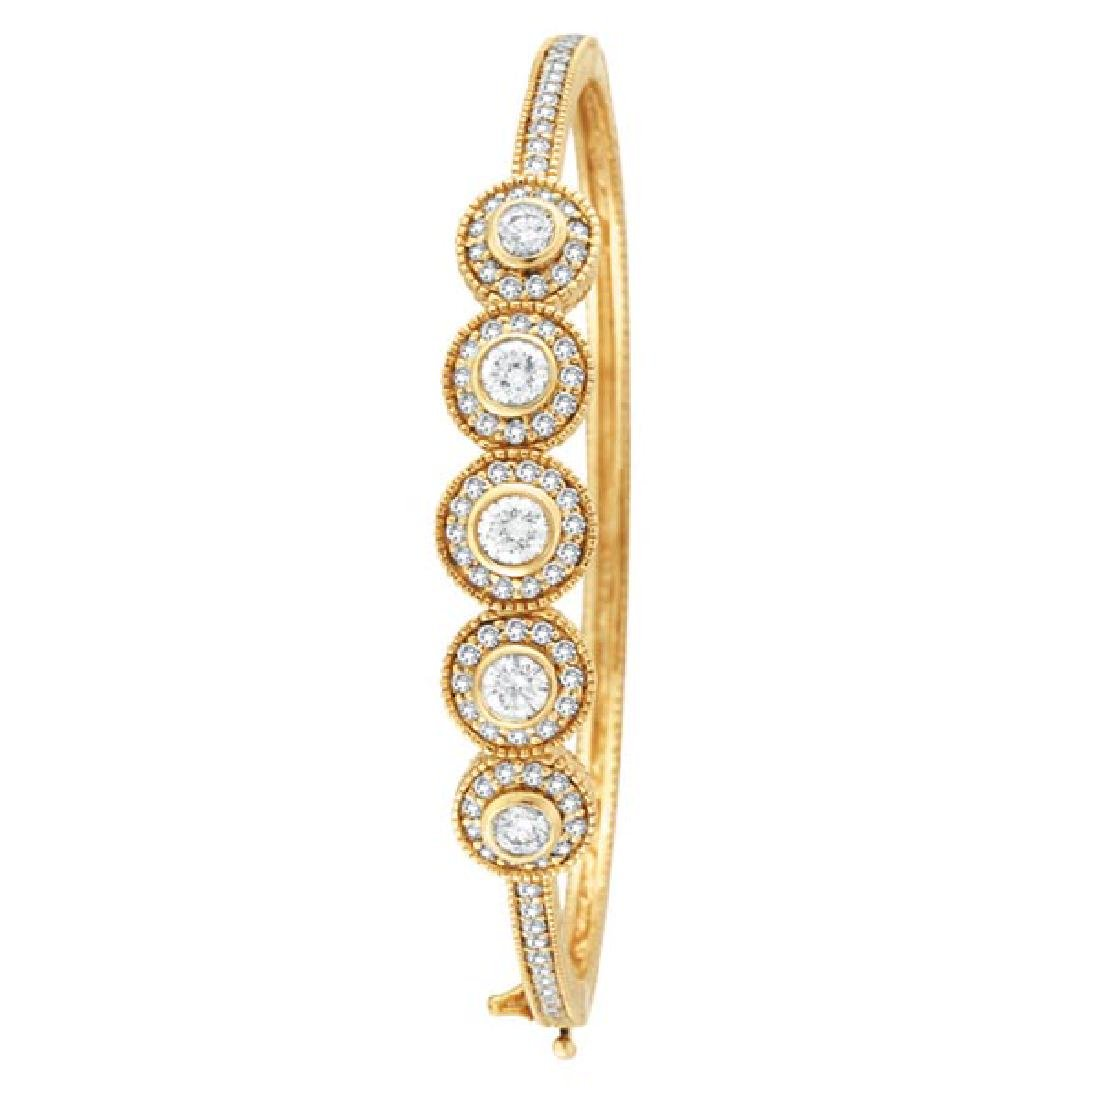 Vintage Style Diamond Bangle Bracelet 18K Yellow Gold (